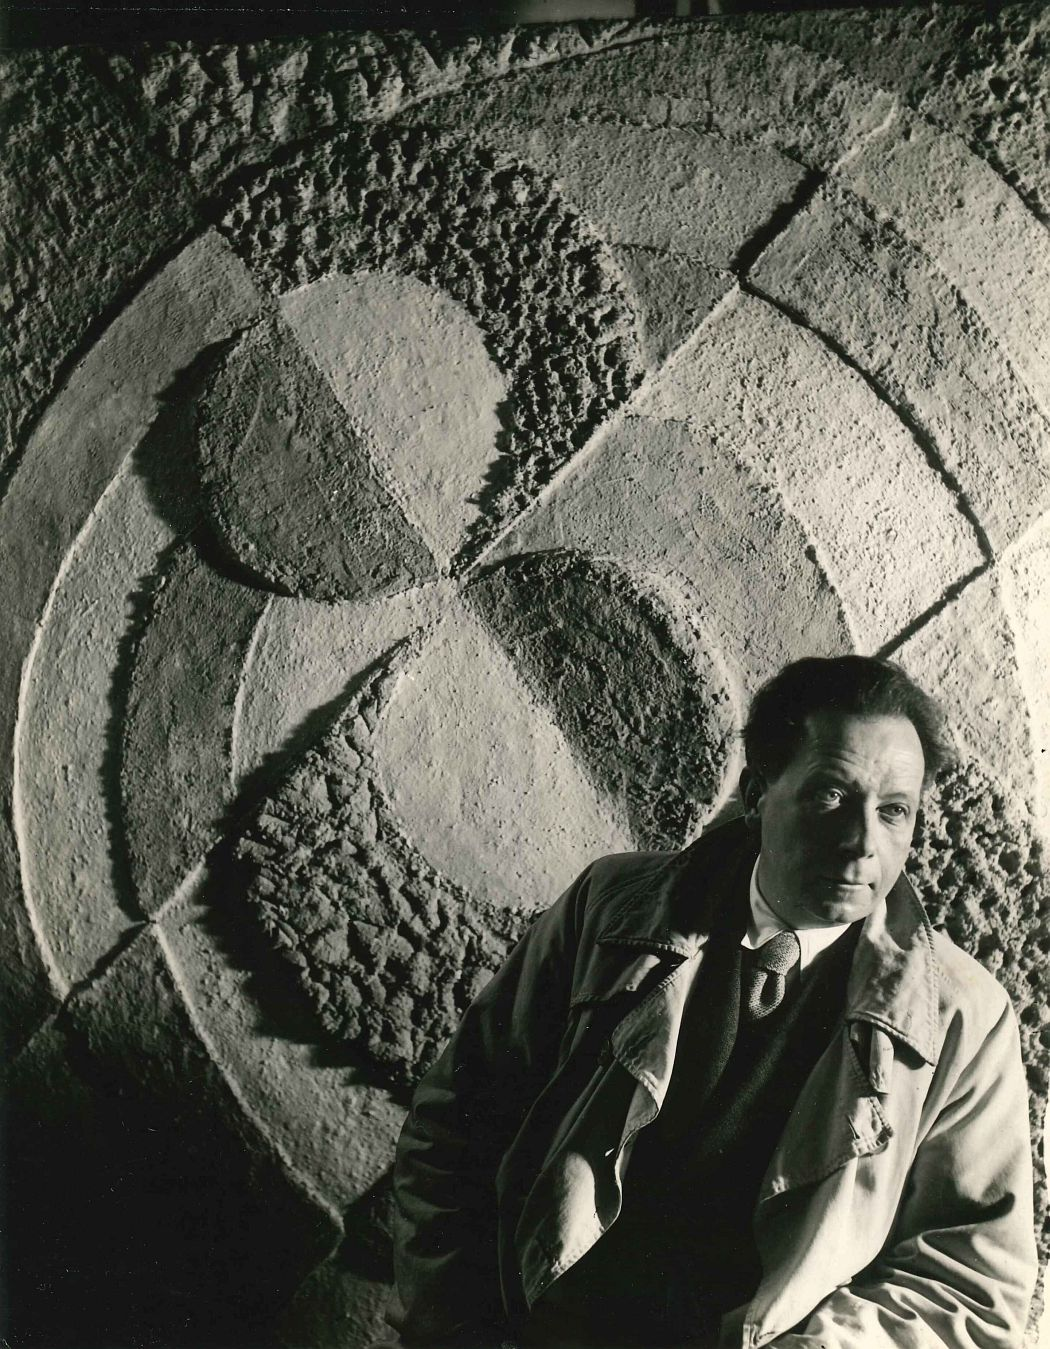 Portrait Composition (Robert Delaunay), 1935 © Martini & Ronchetti courtesy Archives Florence Henri